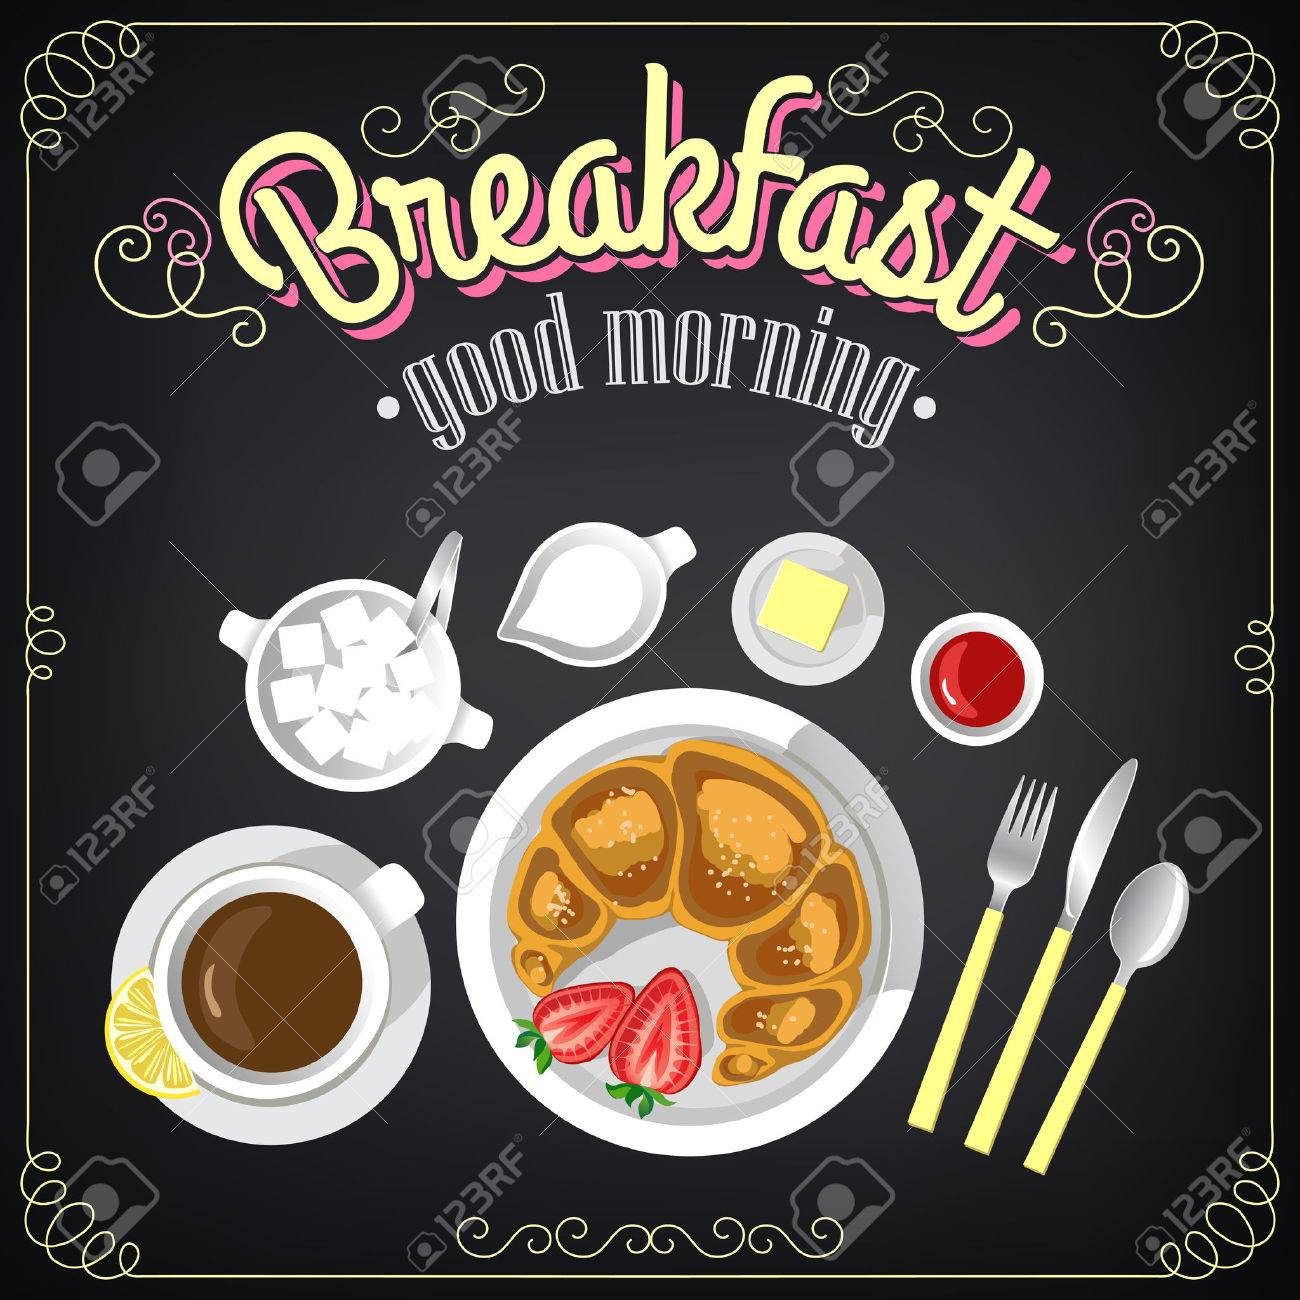 Vintage Poster Breakfast menu Croissant and coffee Set on the chalkboard for design in retro style - 30768755